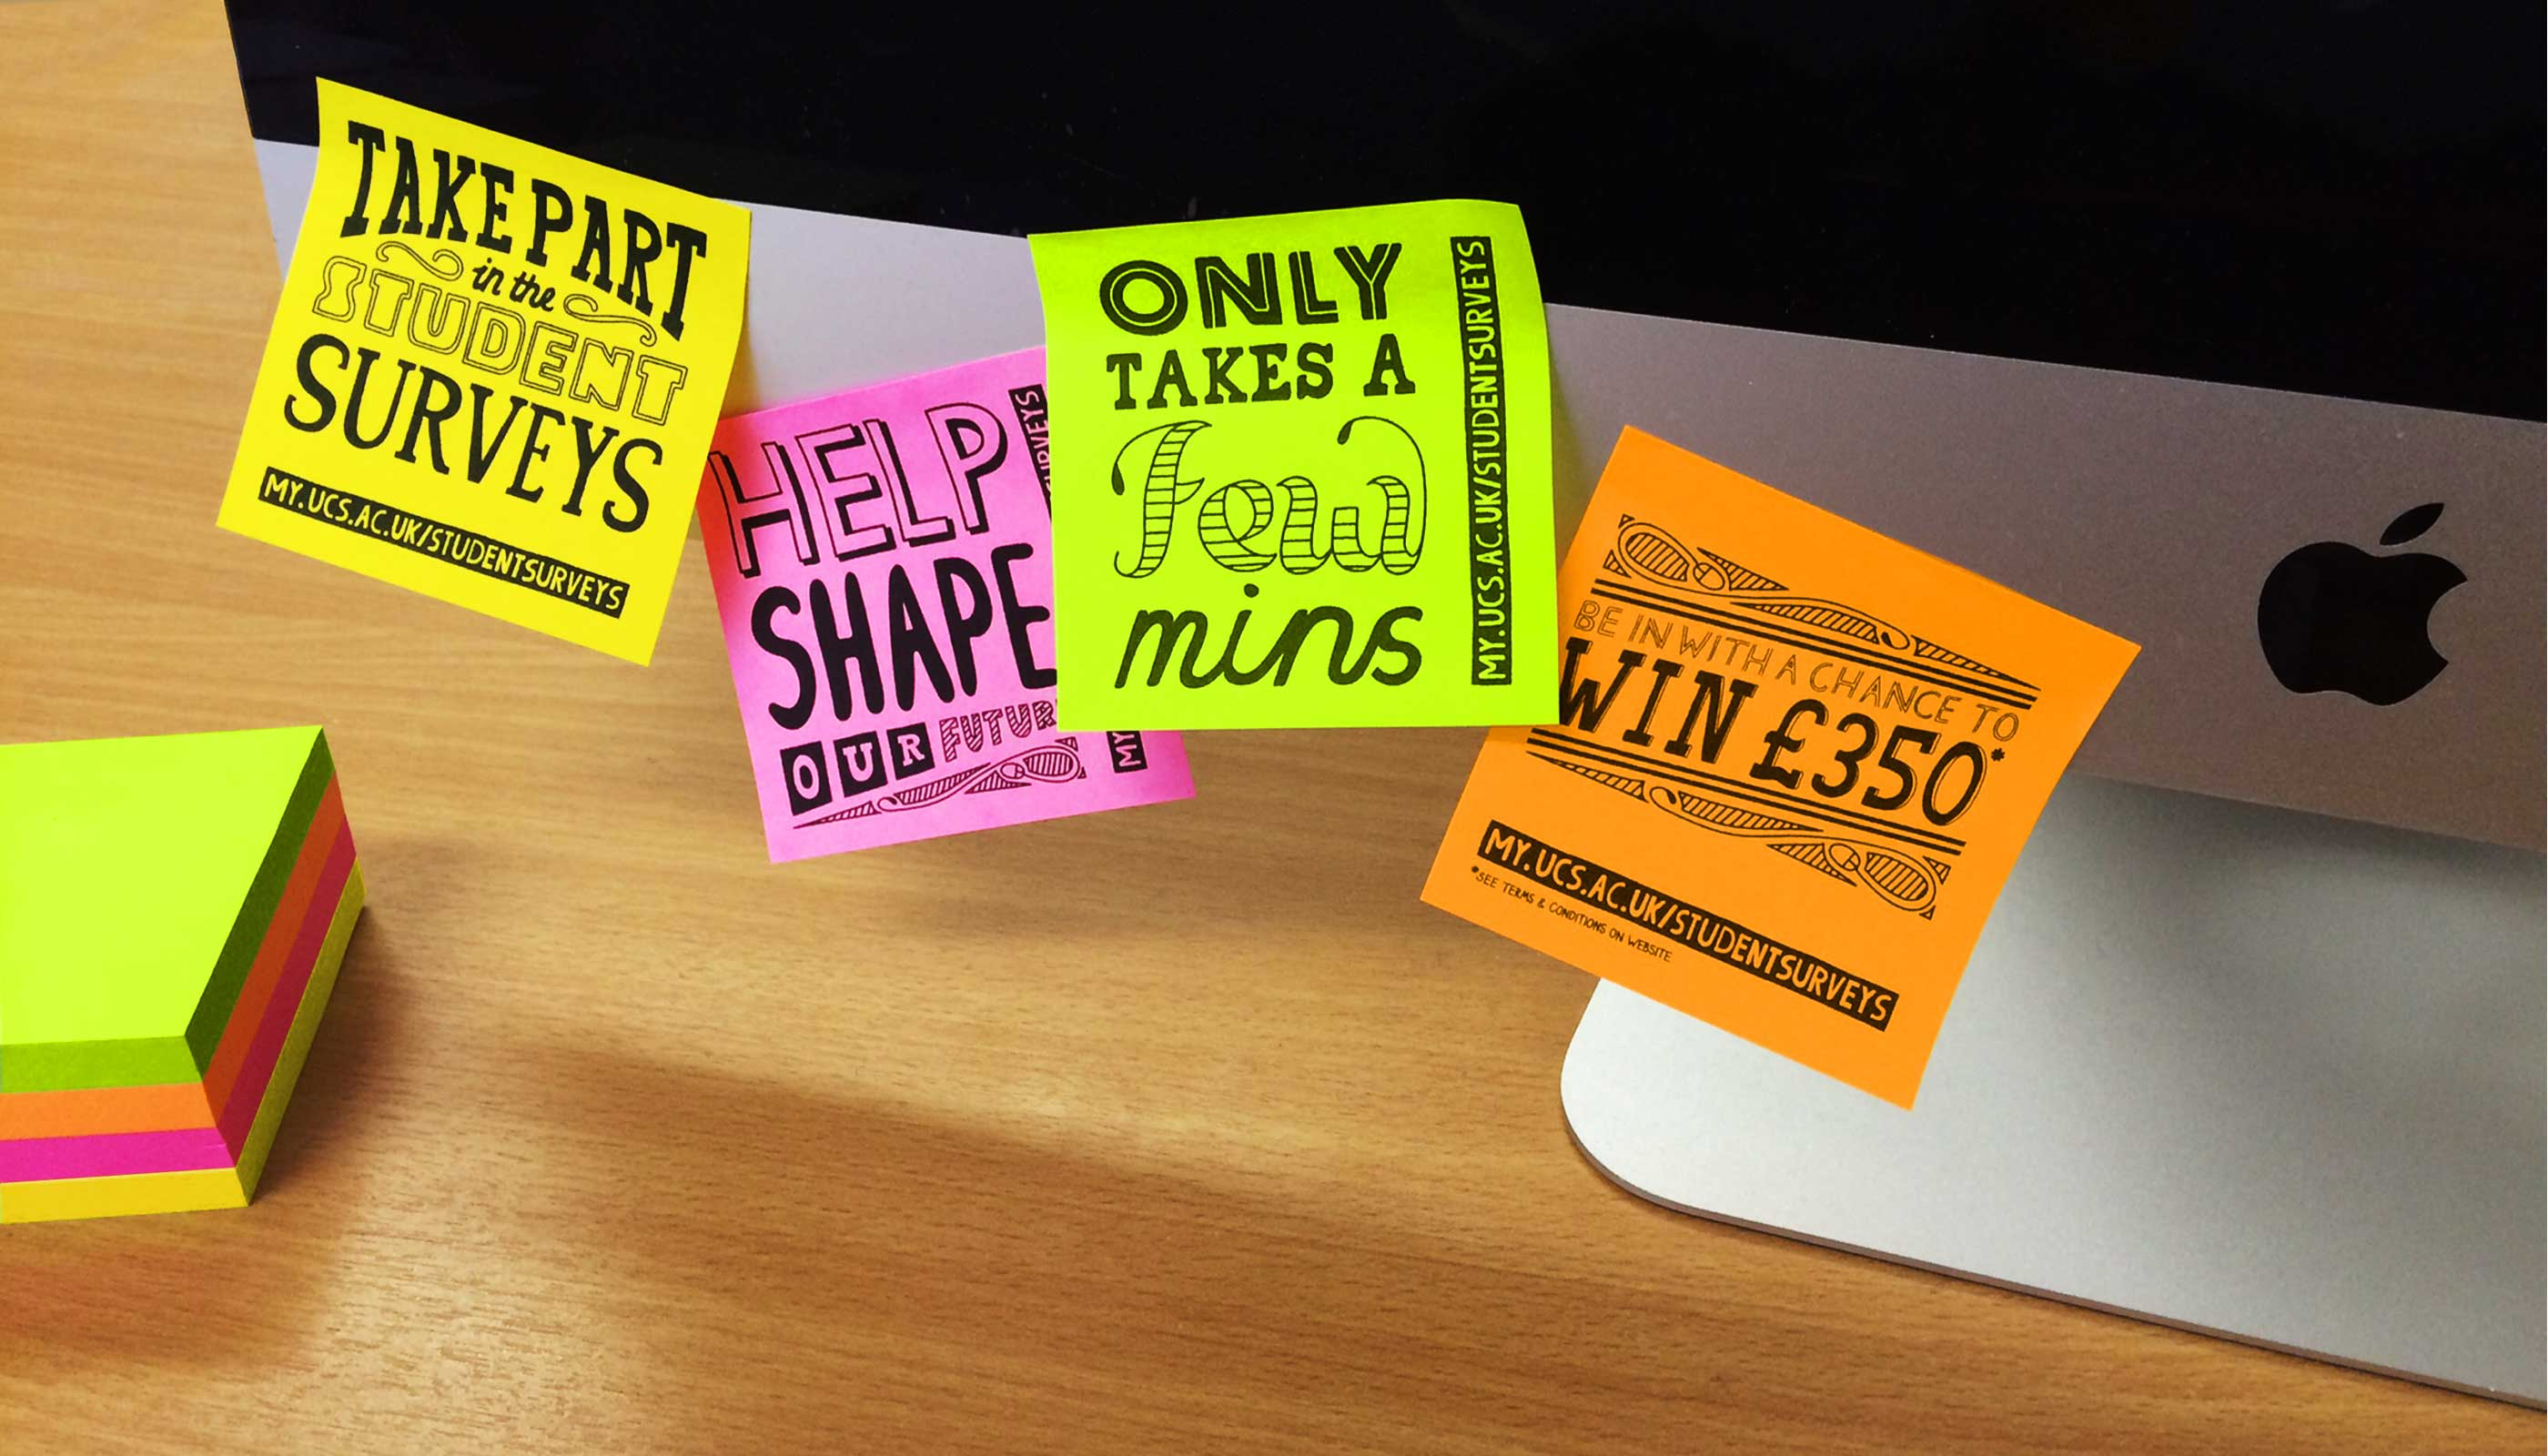 Post it notes marketing campaign for the 2016 student surveys at University Campus Suffolk.